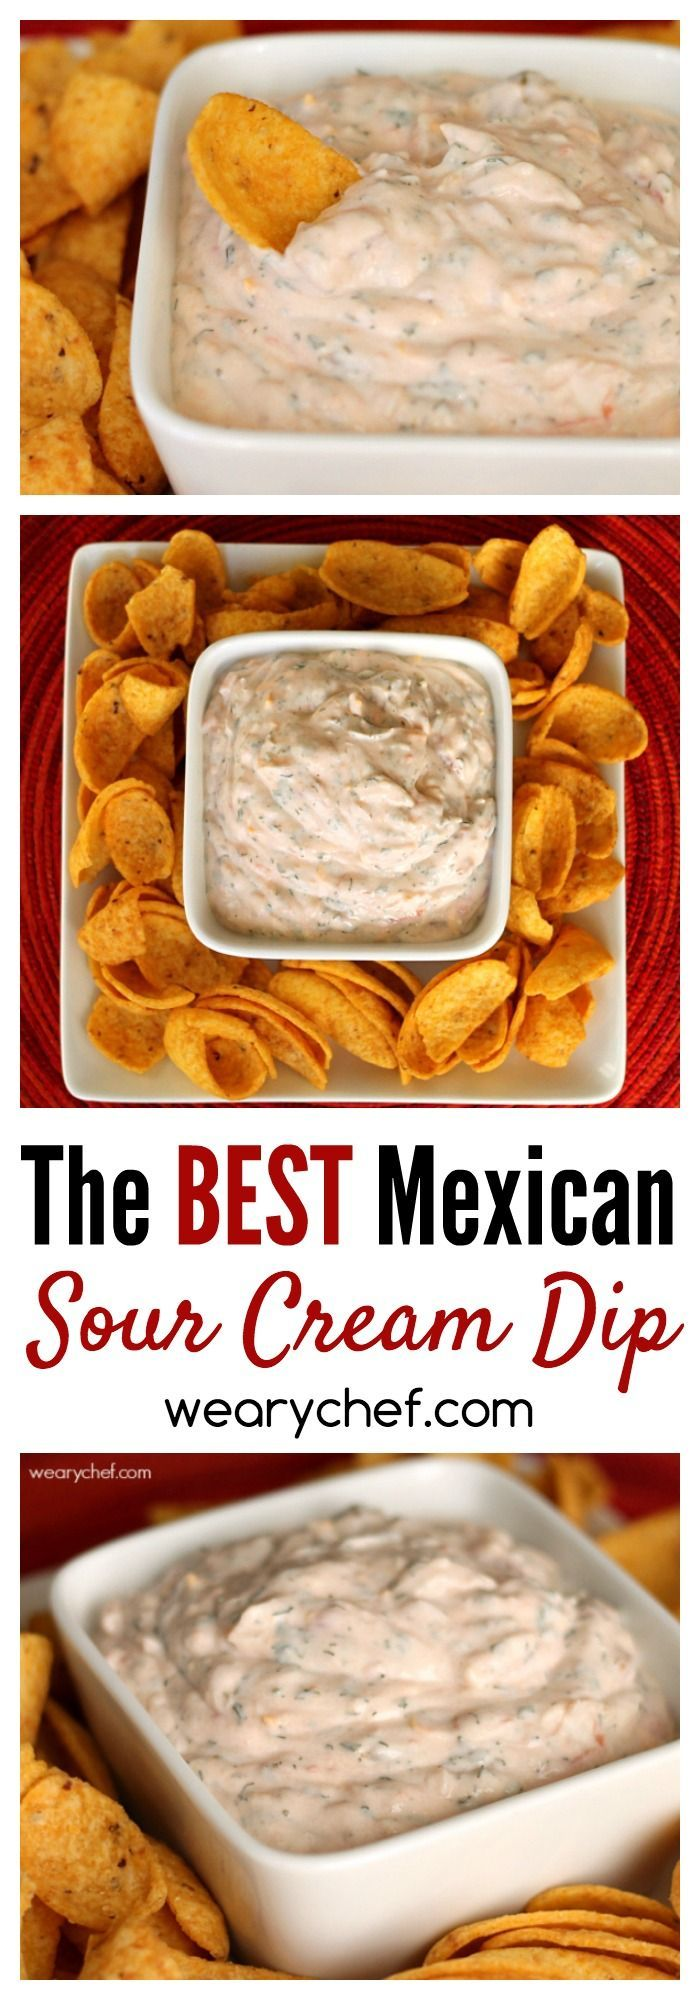 Sour cream coffee cake the frugal chef - Easy Mexican Sour Cream Dip